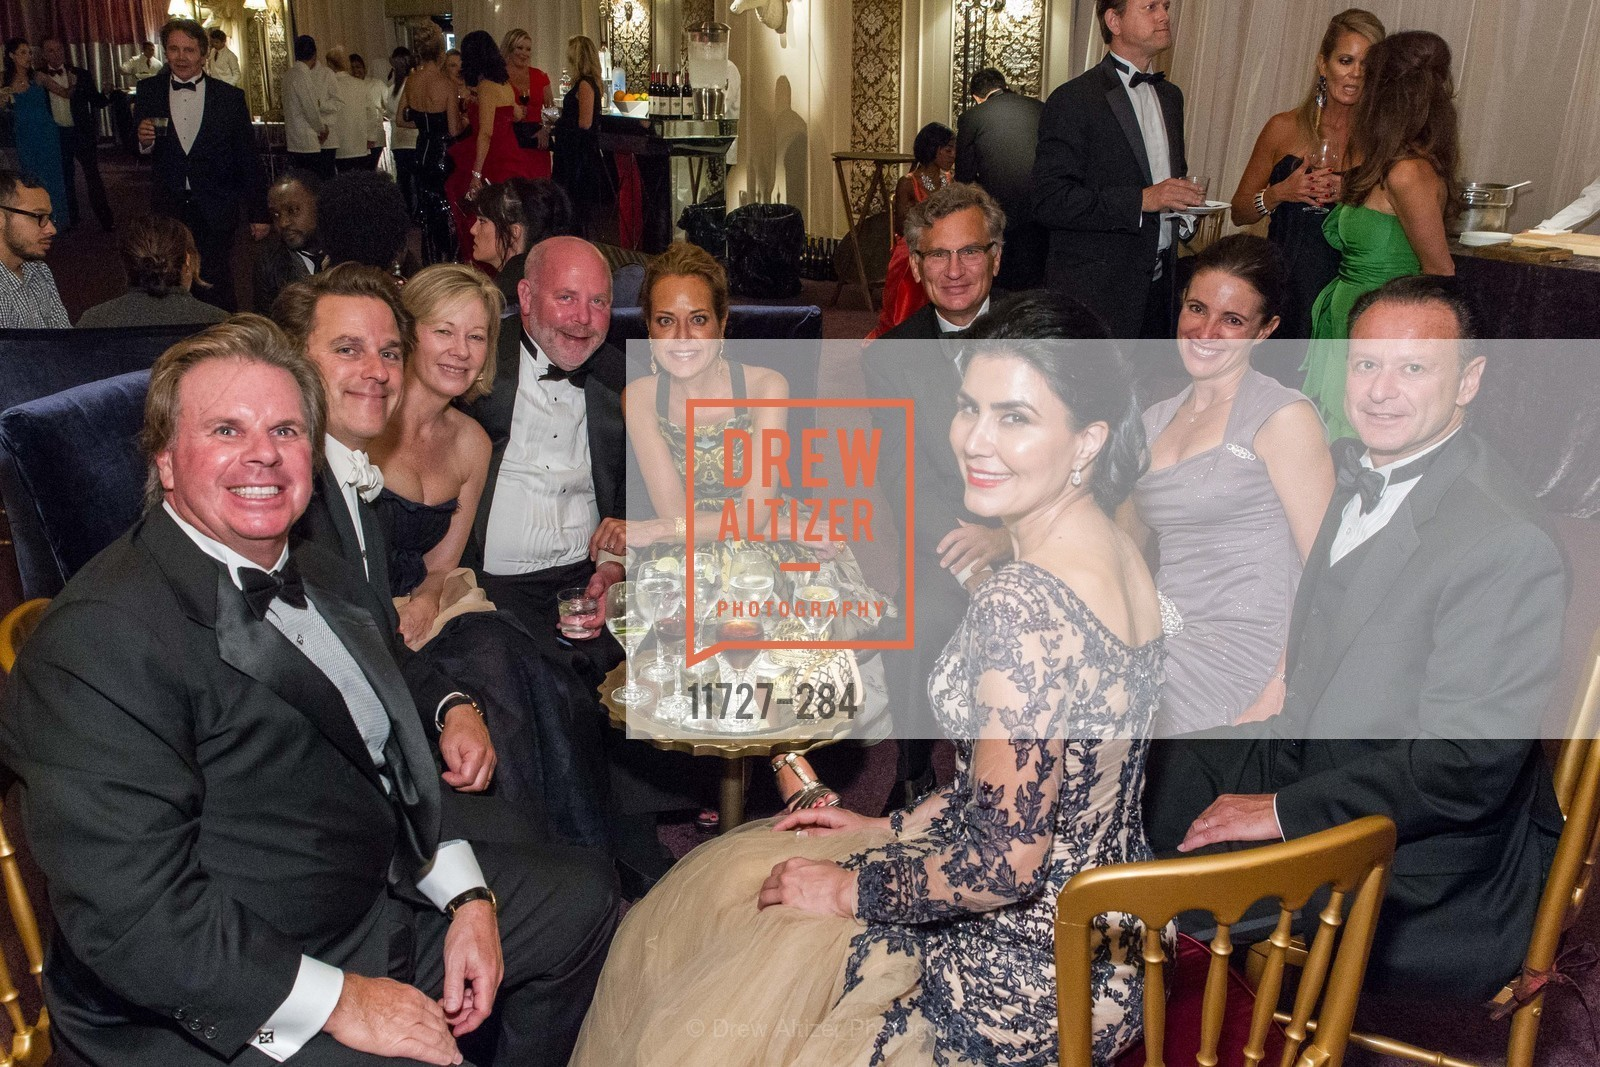 Gary Drysdale, Gregory Malin, Janet Lamkin, Paul Holm, Charlot Malin, Bill Lamkin, Anne Laury, Daniel Laury, Afsaneh Akhtari, Opera Ball 2015: Moonlight & Music, War Memorial Opera House. 301 Van Ness Ave, September 11th, 2015,Drew Altizer, Drew Altizer Photography, full-service agency, private events, San Francisco photographer, photographer california